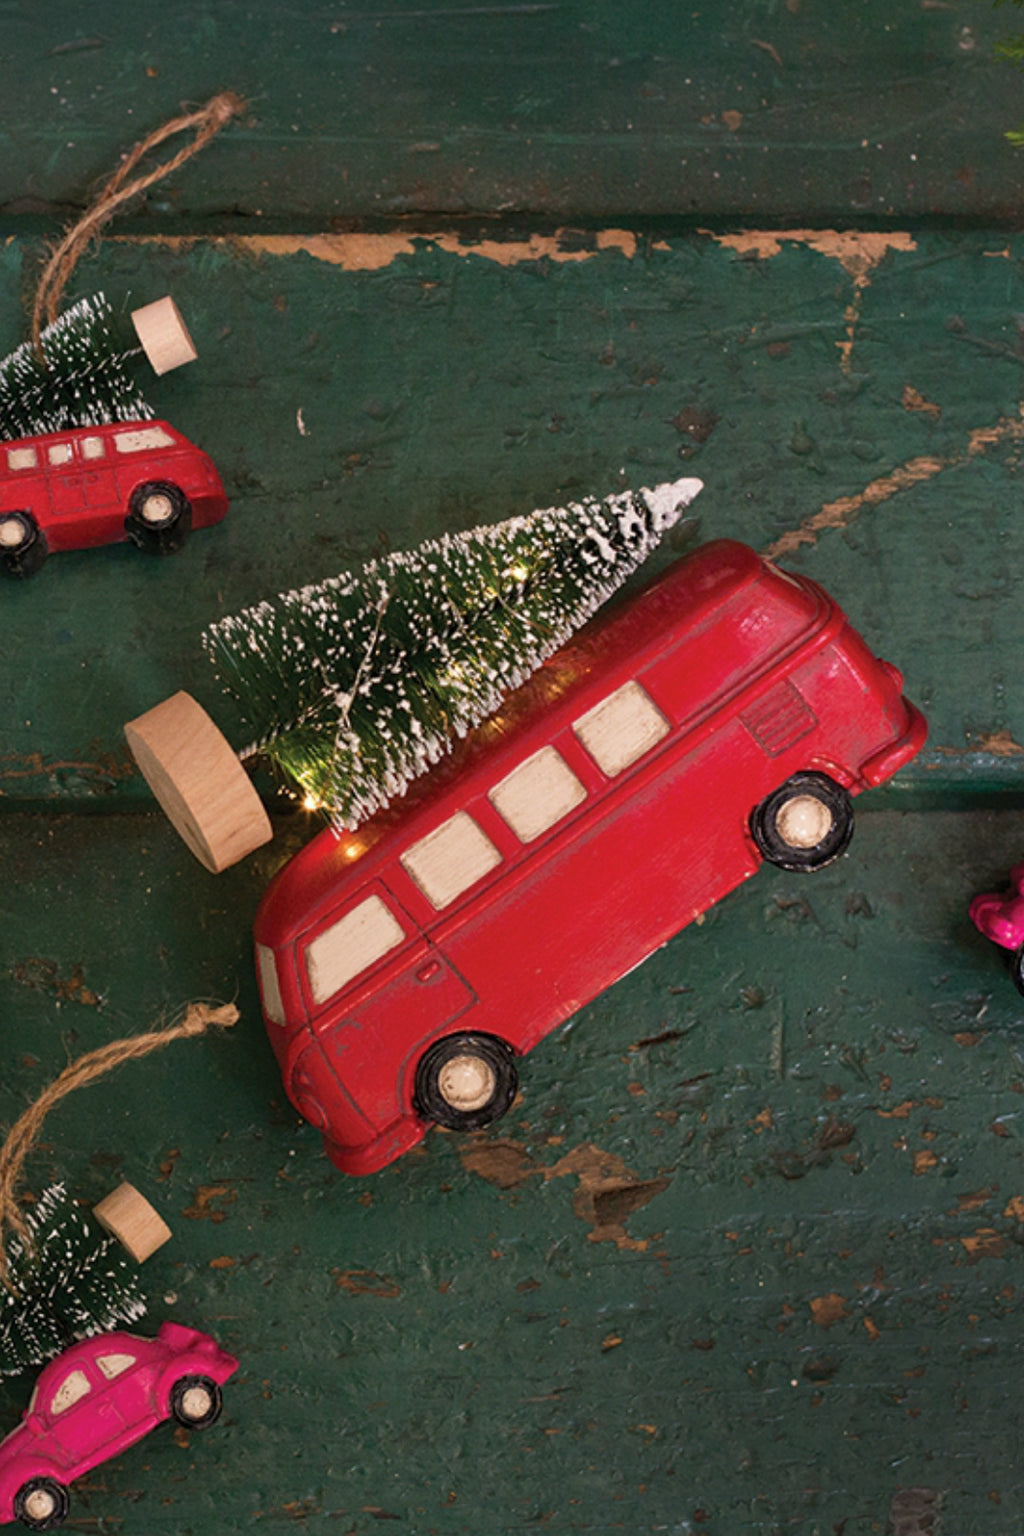 Accent Decor Joyride Van Figurine